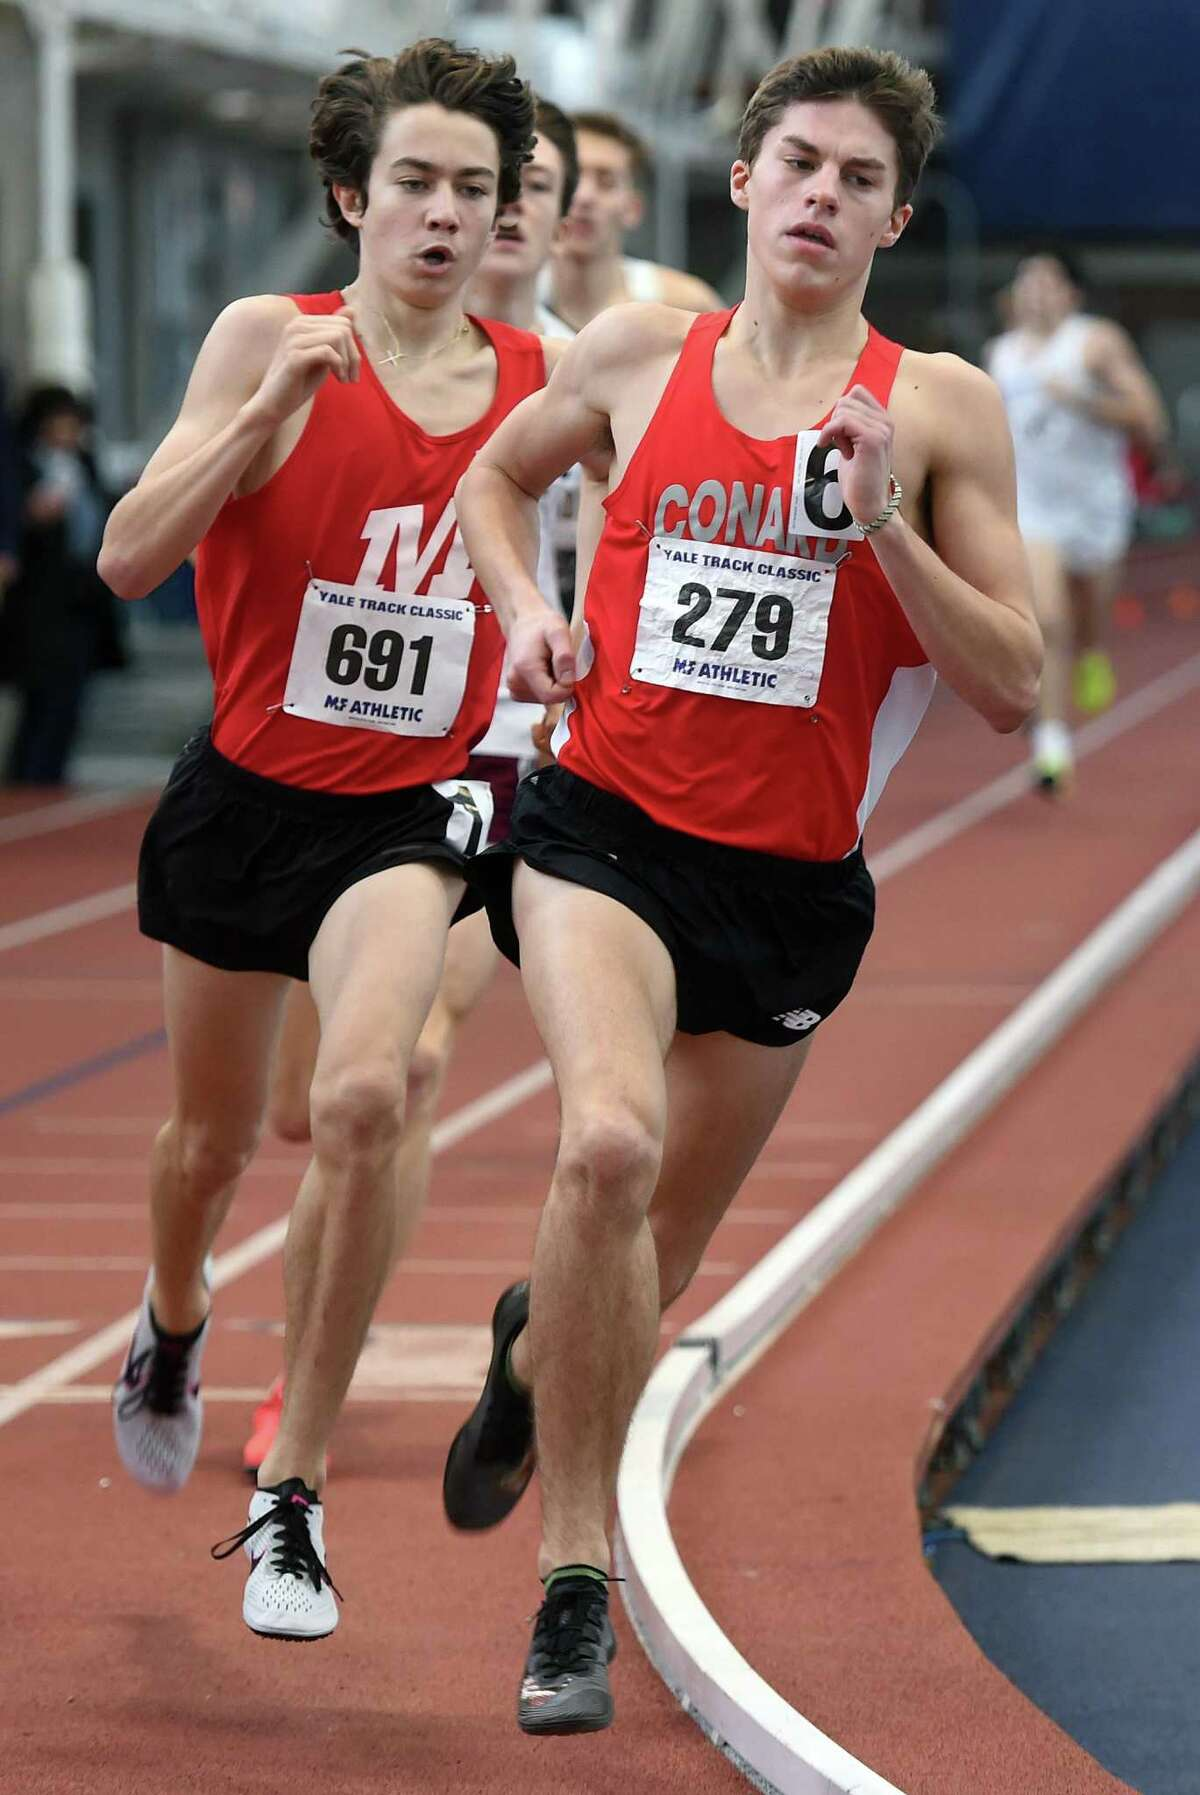 Aidan Puffer (left) of Manchester tries to keep pace with Gavin Sherry of Conard in the boys one mile run at the Yale Interscholastic Track Classic at Coxe Cage in New Haven on January 11, 2020.